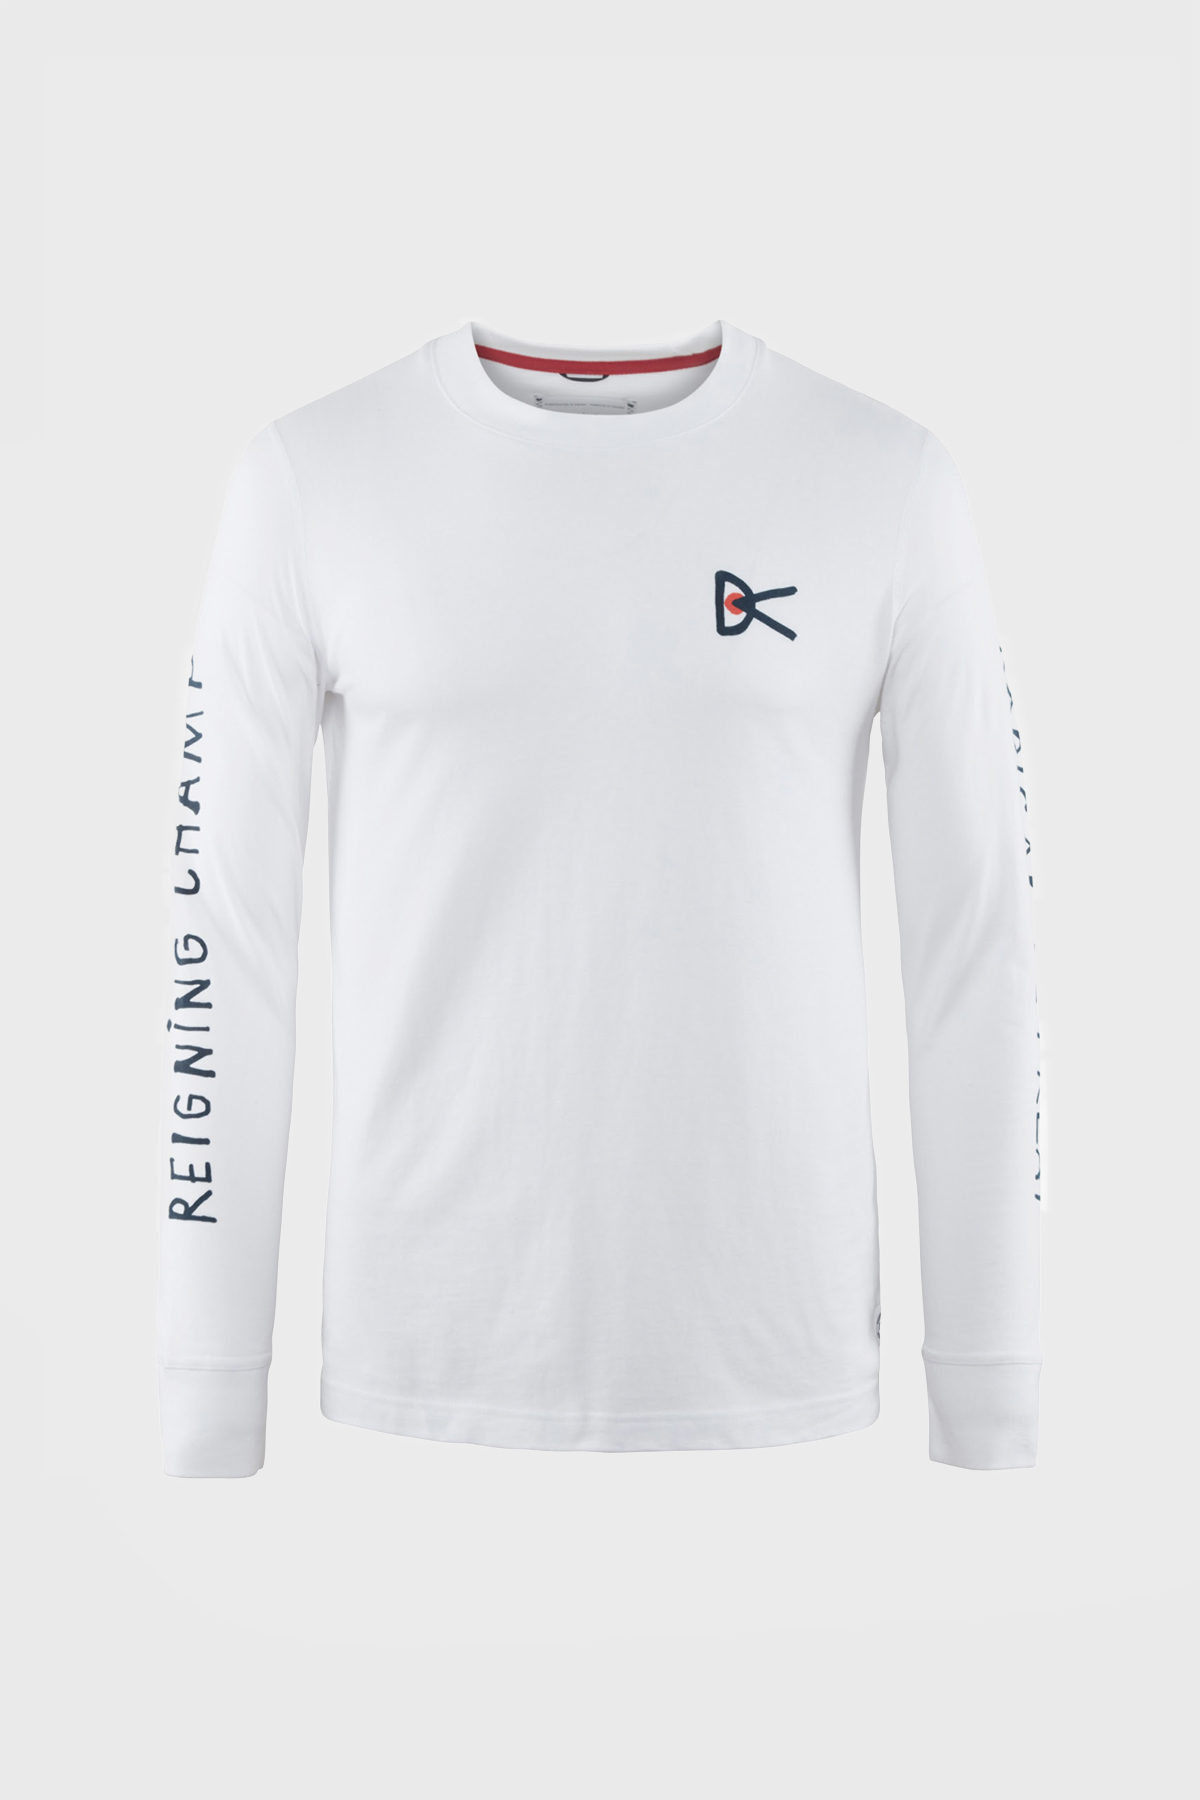 District Vision - retreat long sleeve - White